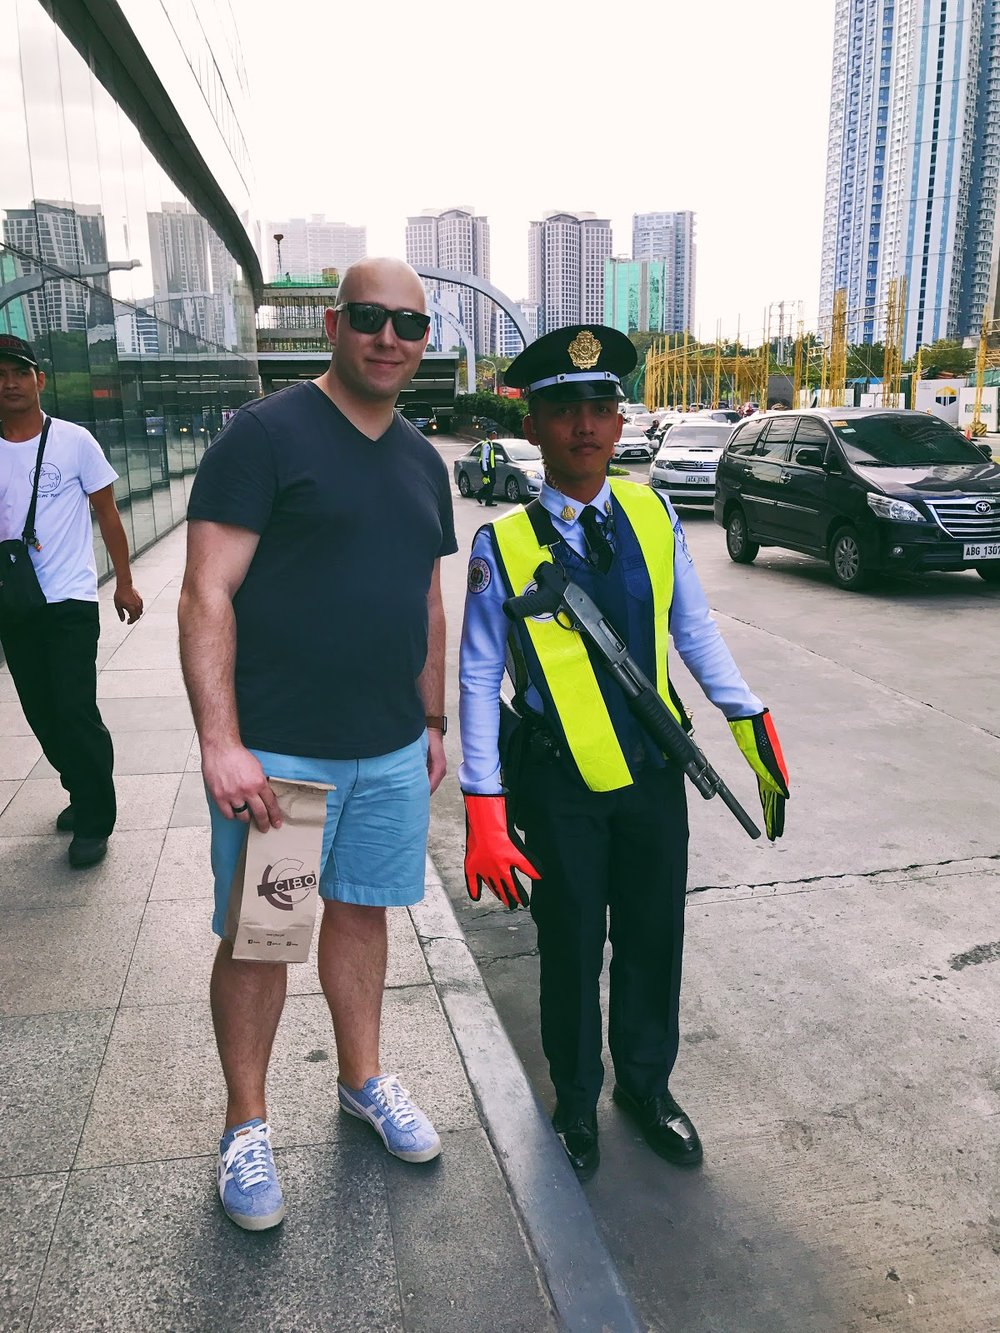 Here's a picture of me (*not Vin Diesel) with the SM Aura mall security guard carrying a rifle.